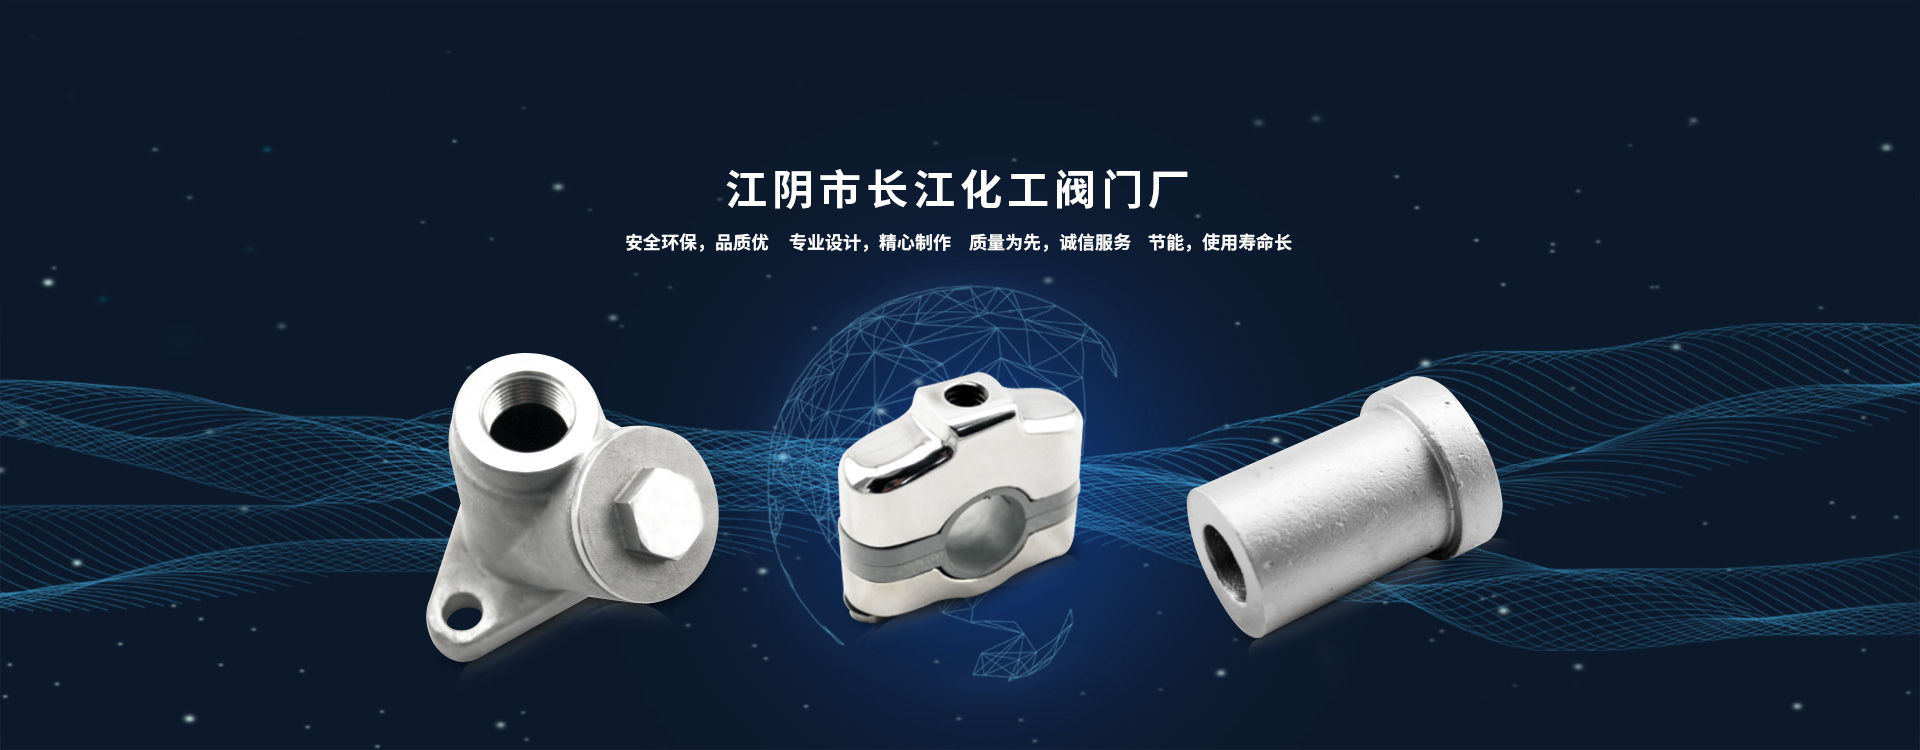 -CJHG Stainless Casting Machinery Co.,Ltd